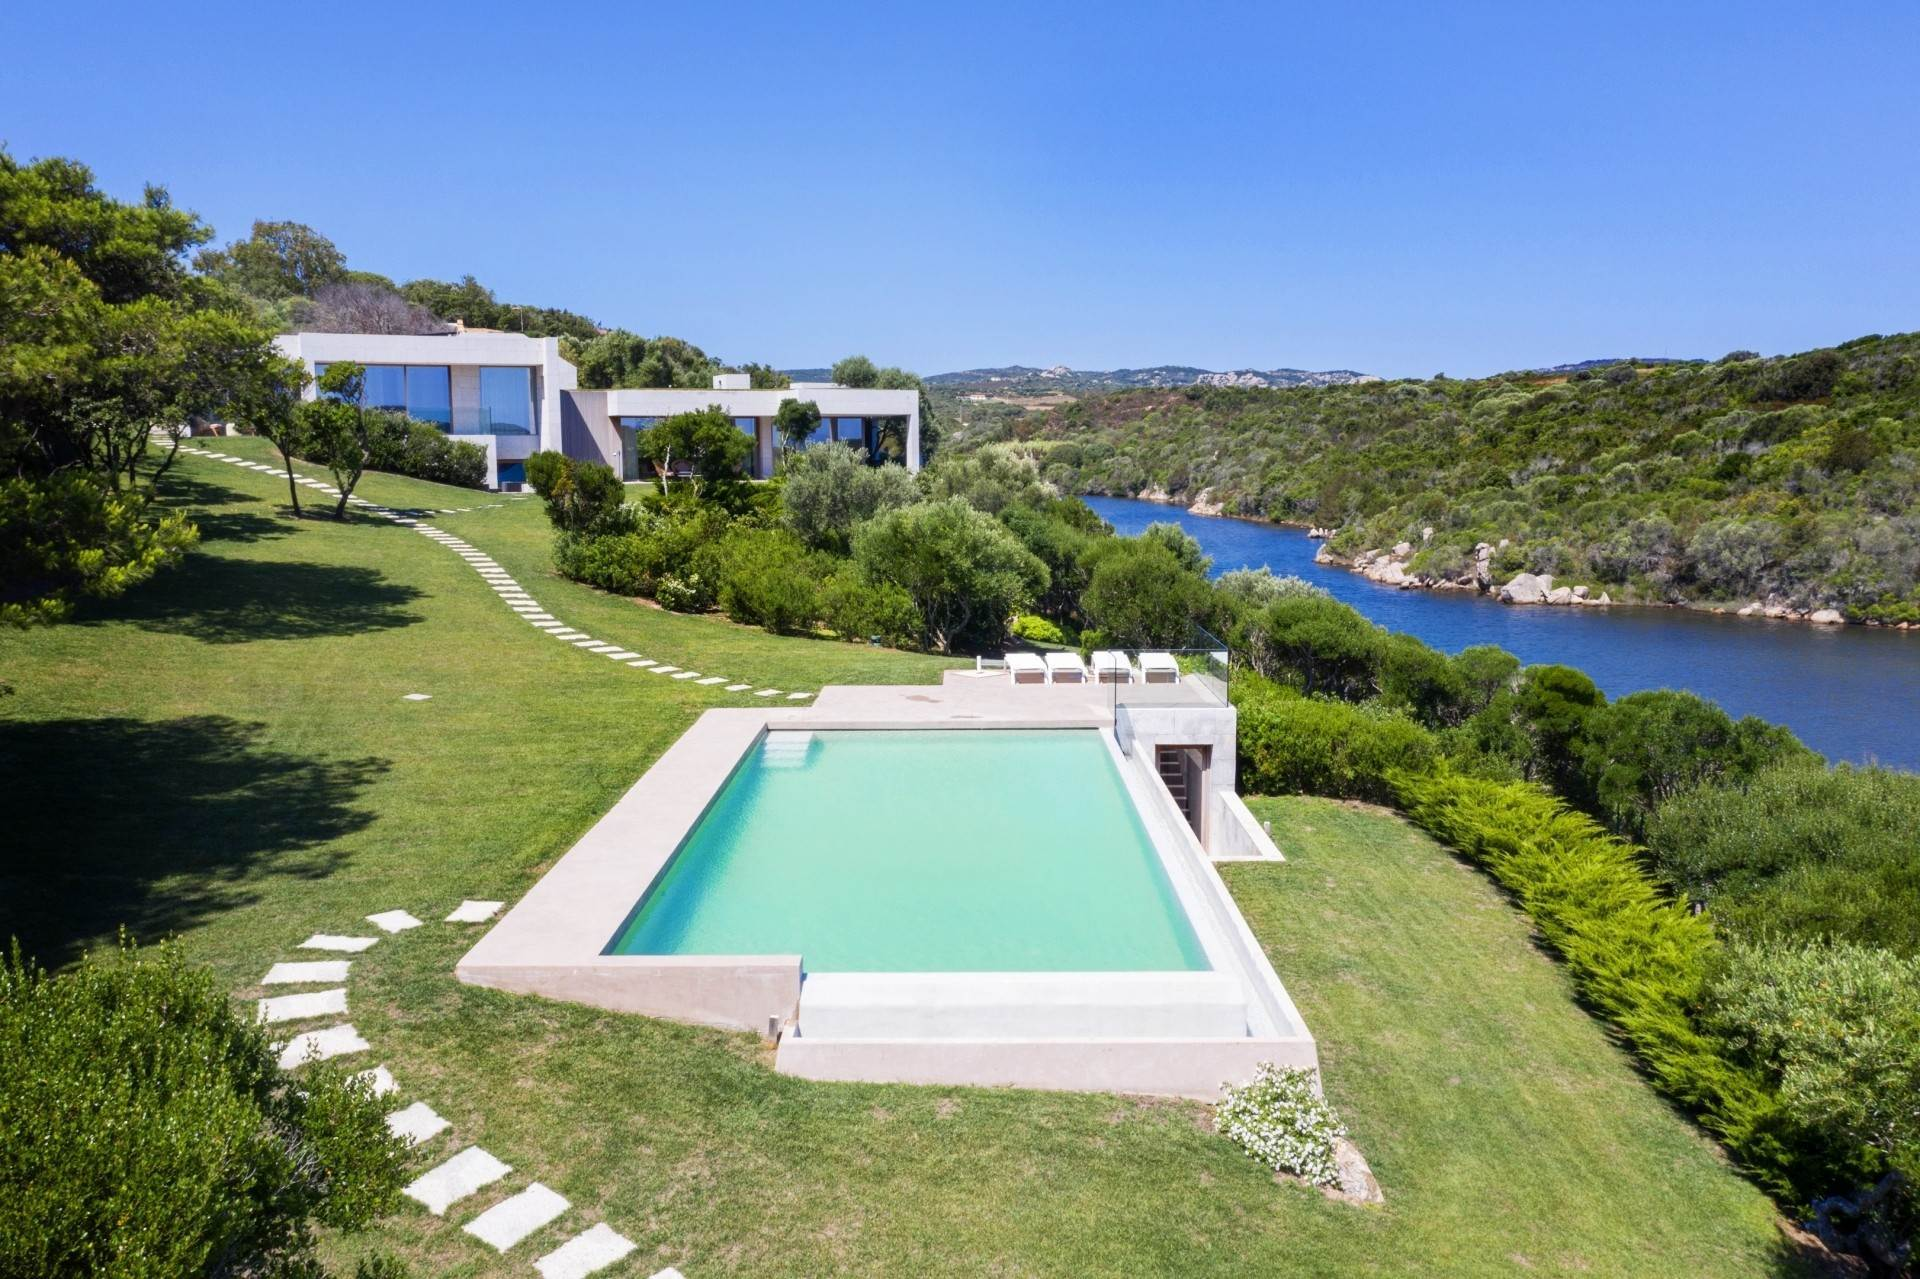 2. Villa/Townhouse for Sale at Waterfront Villa La Coluccia Costa Smeralda, Olbia Tempio,07020 Italy